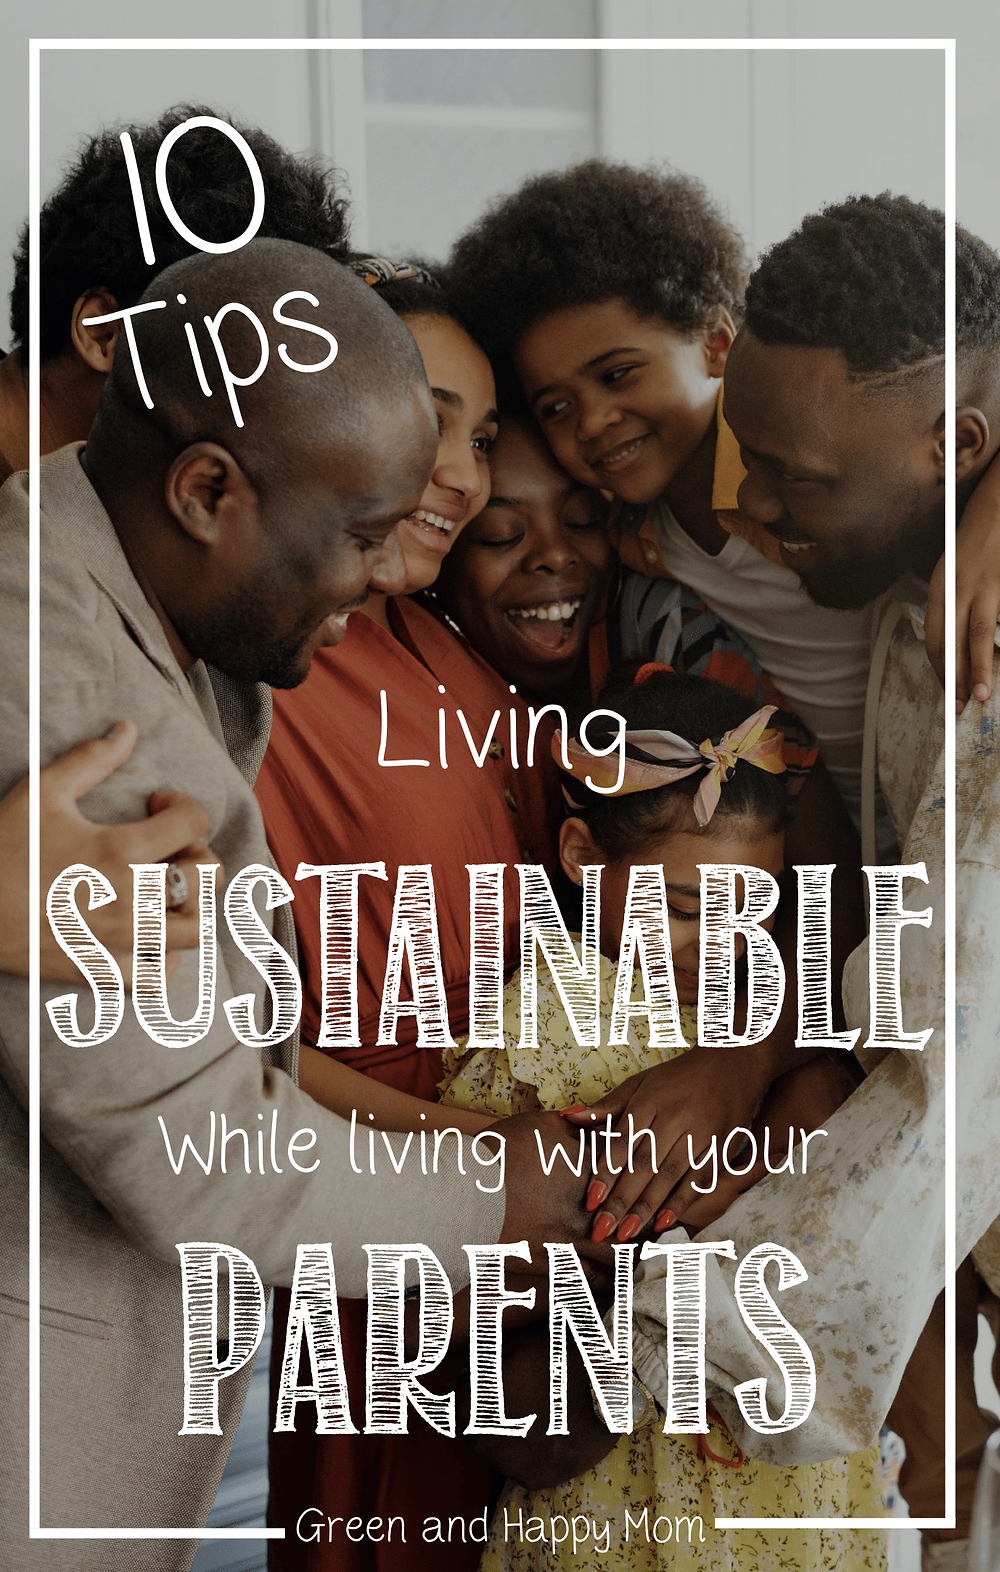 Living sustainable while living with your parents